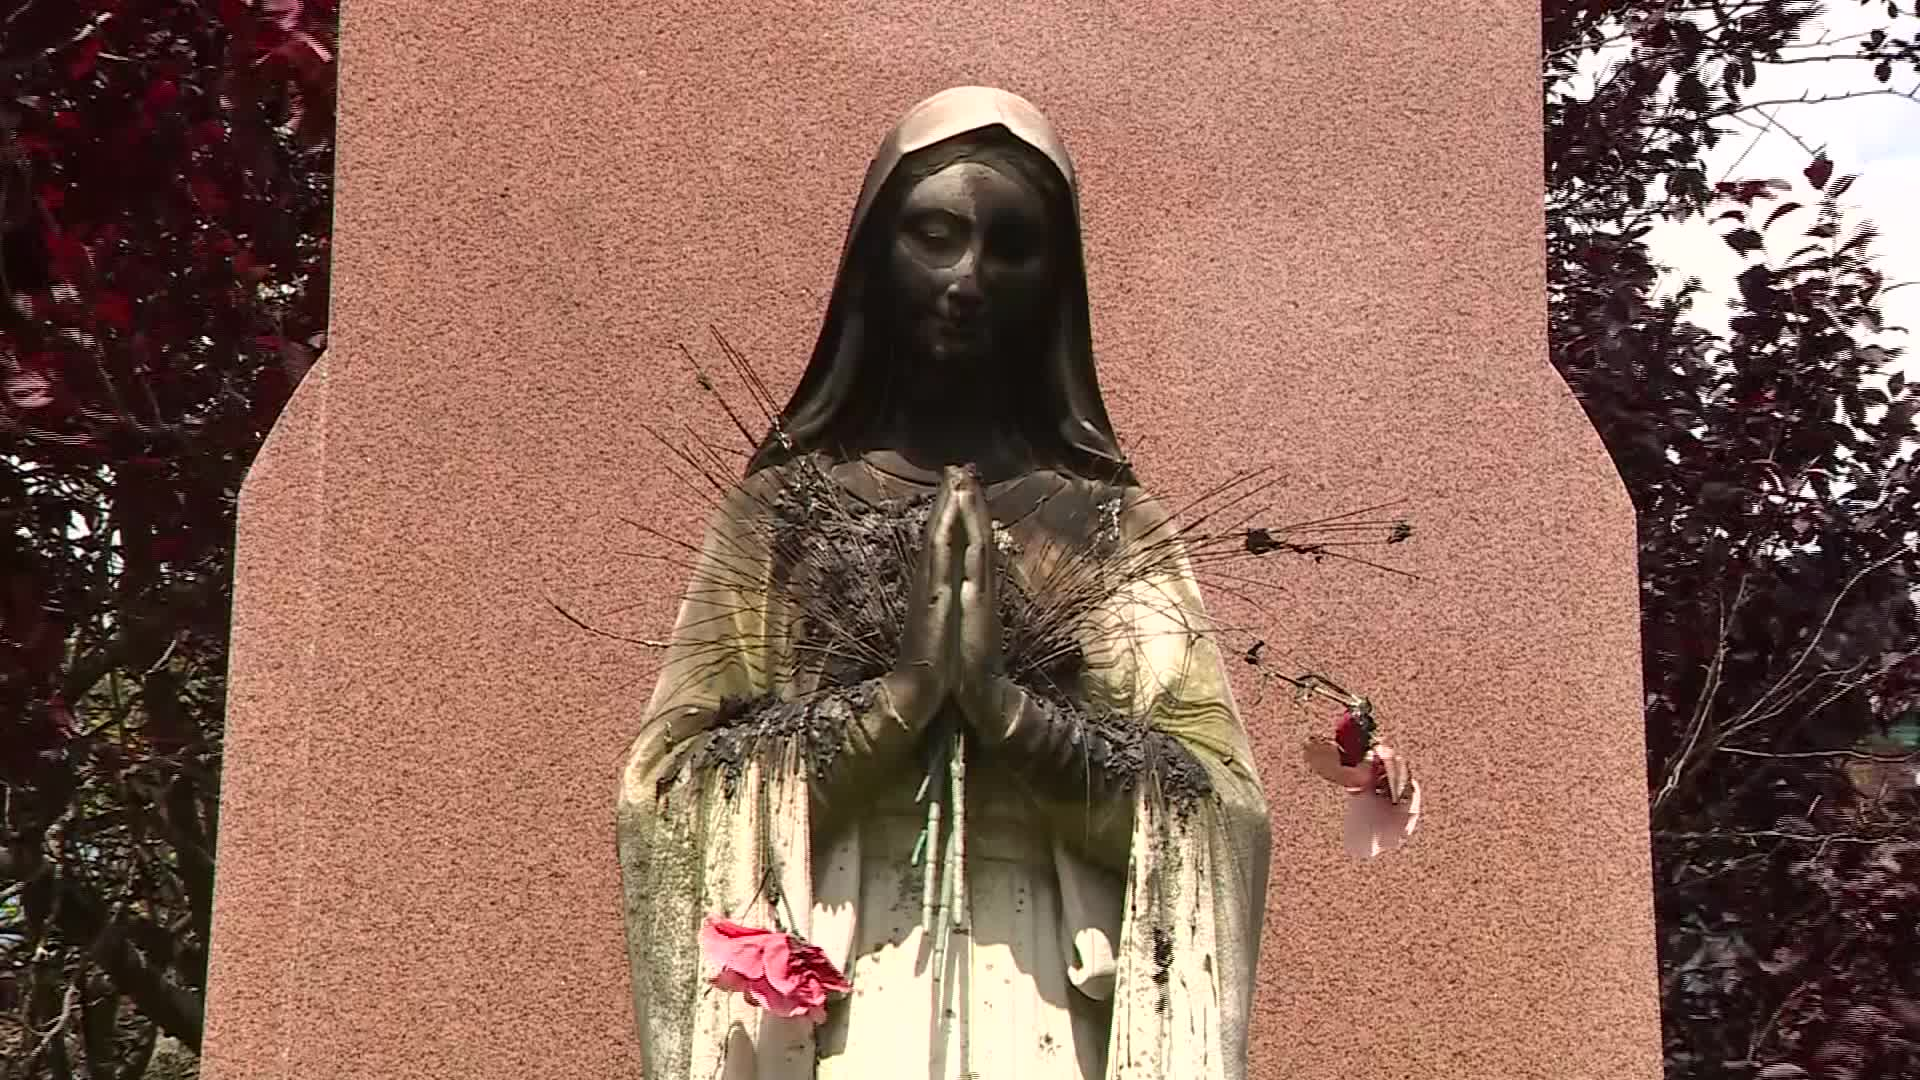 A statue of the Virgin Mary was set on fire at a Boston church